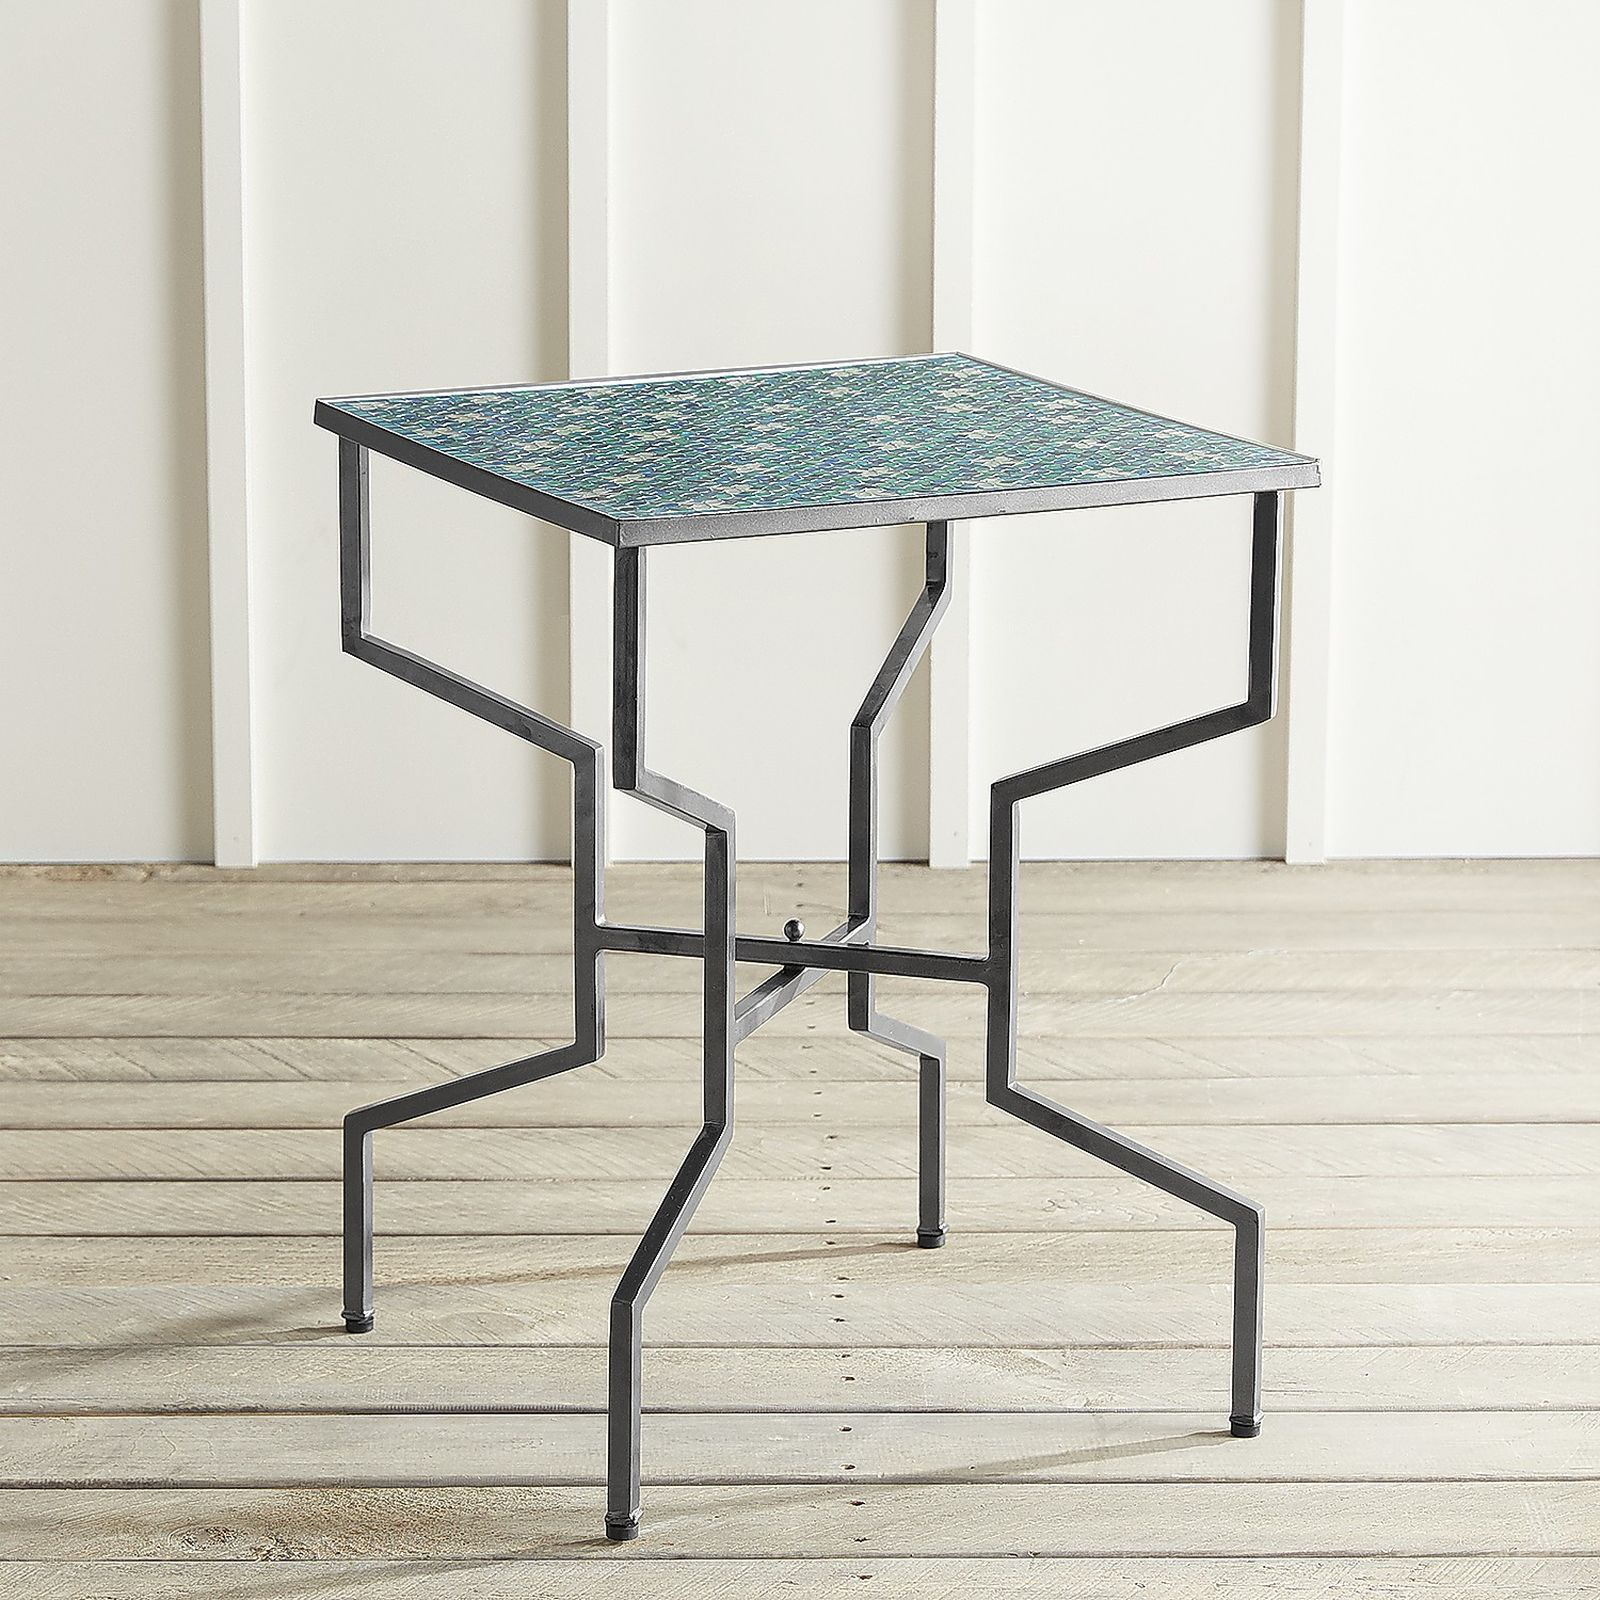 julian mosaic accent table side tables tiles tile outdoor with ingenious design and mediterranean inspired motif our has hand applied top metal base equally cymbal bag the